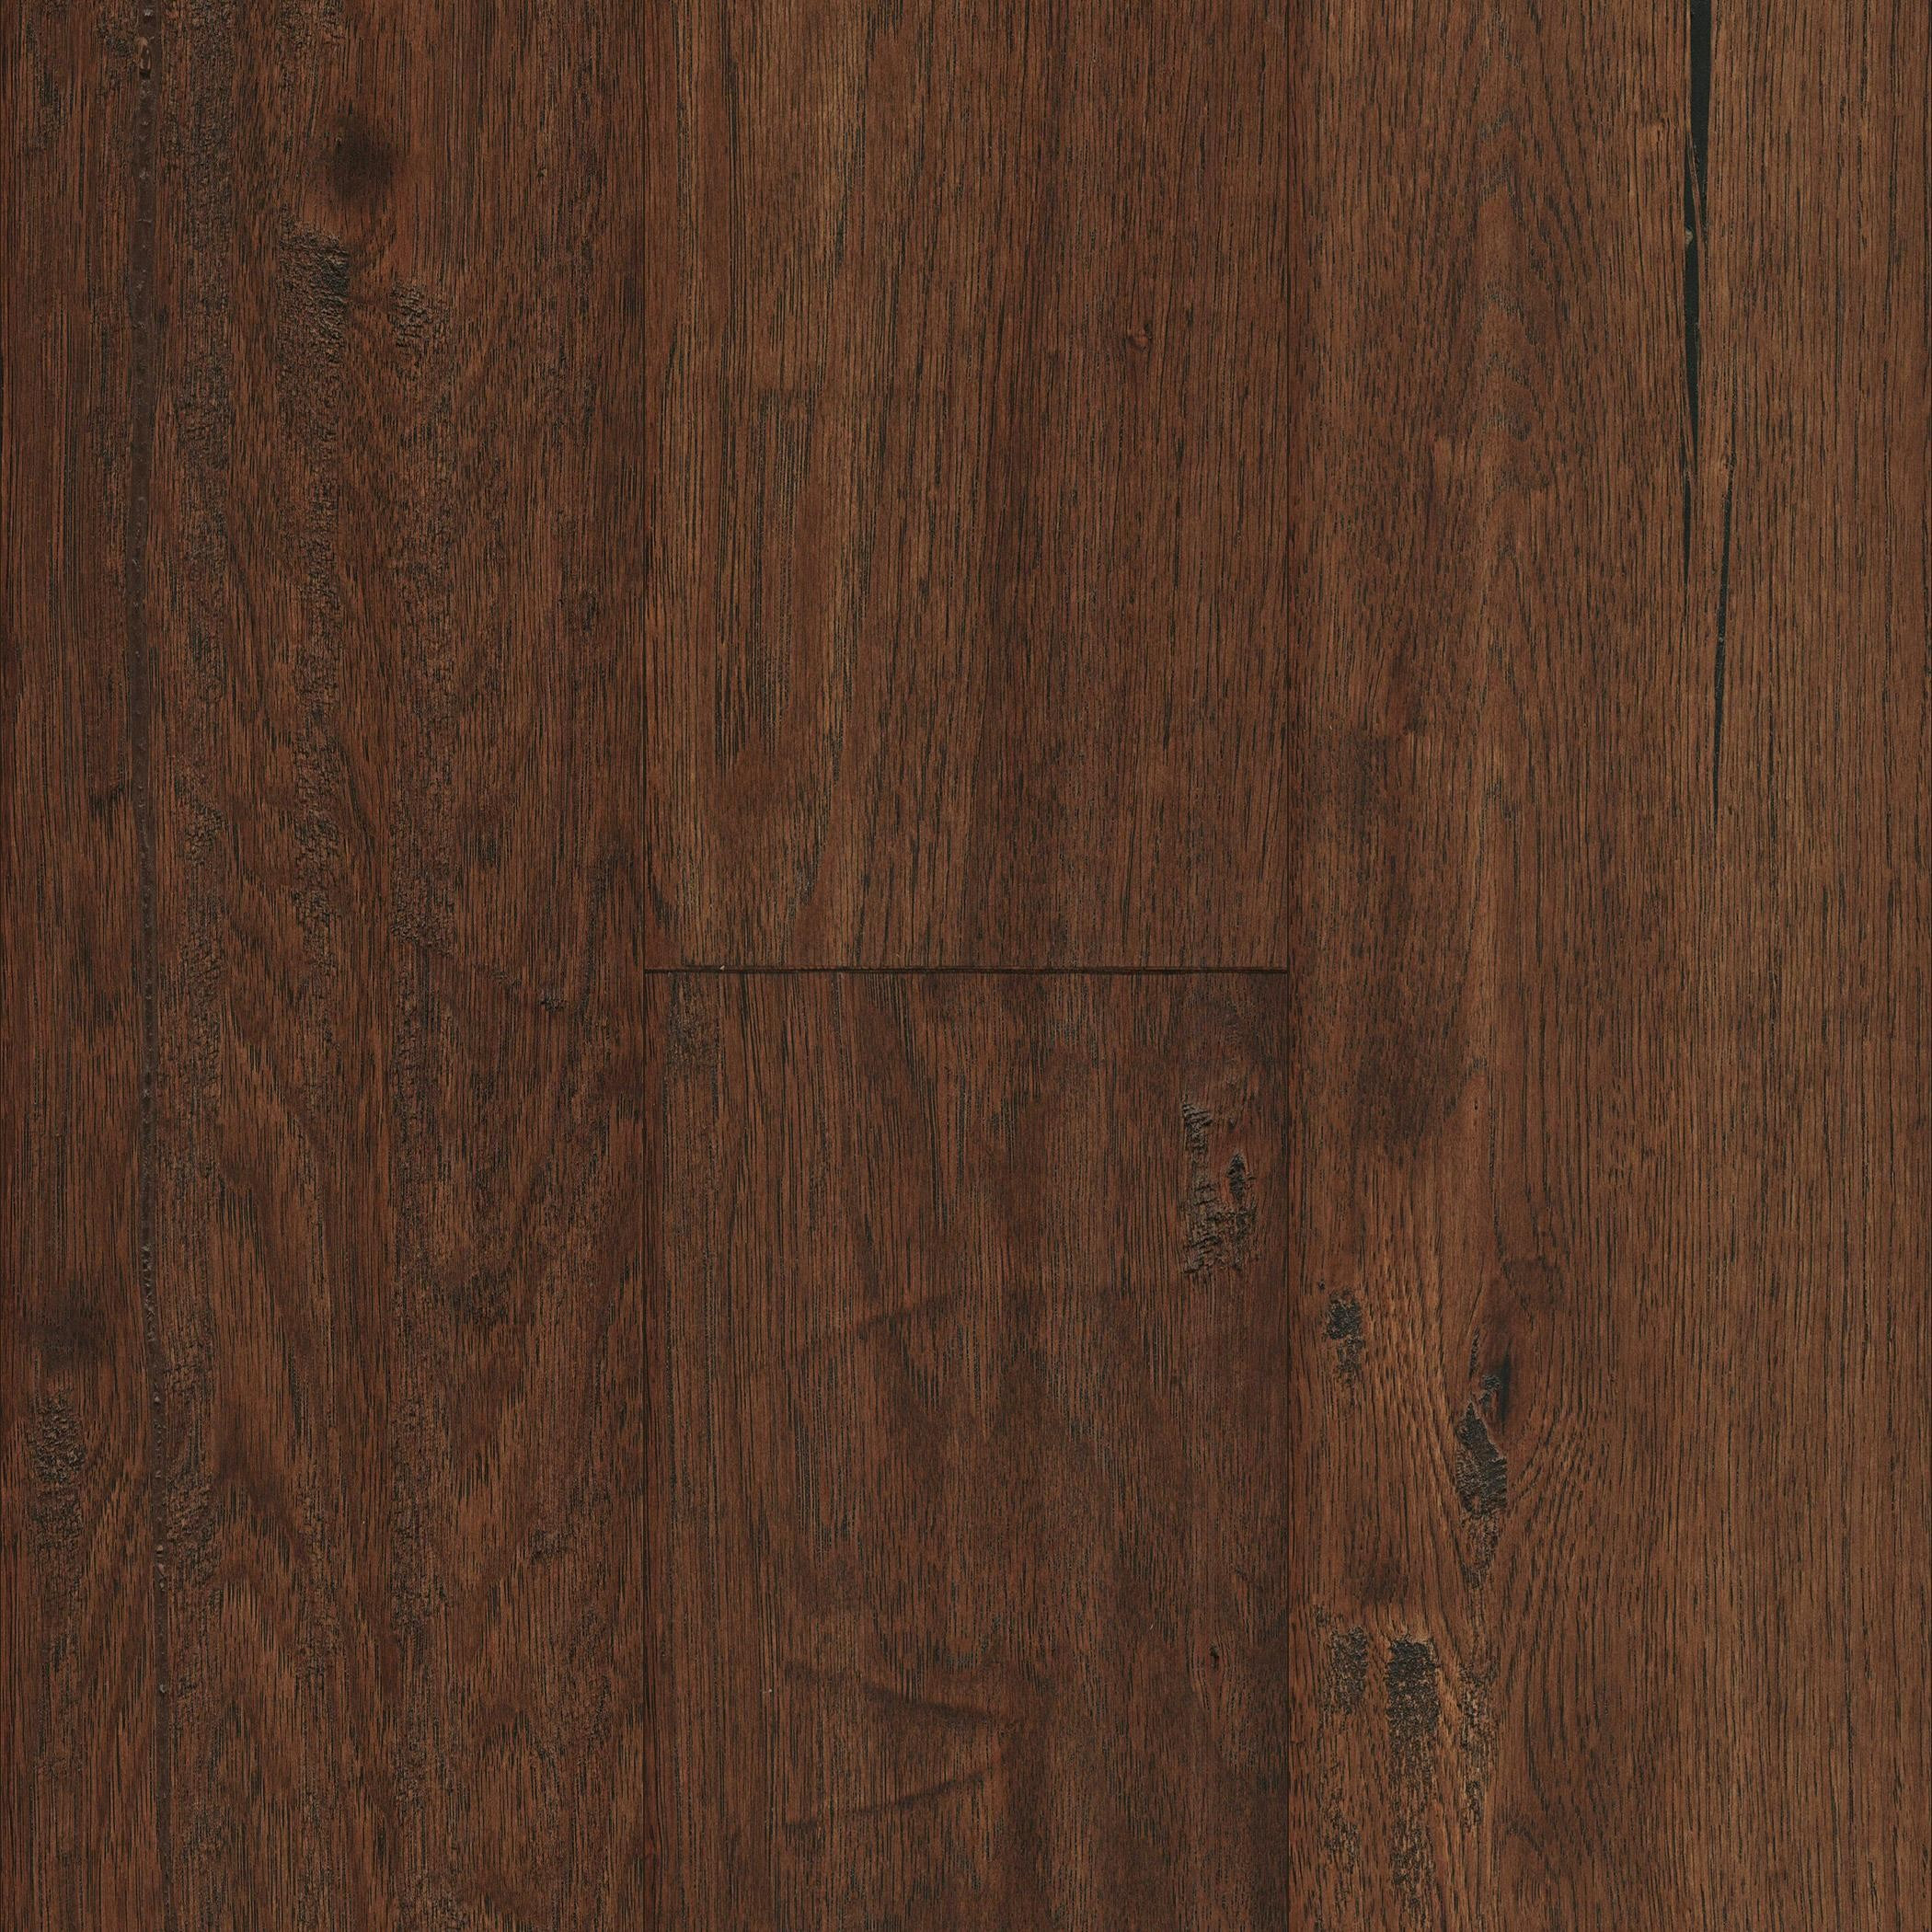 engineered hardwood flooring definition of 18 luxury laminate vs engineered hardwood pics dizpos com inside laminate vs engineered hardwood awesome mullican san marco hickory provincial 7 sculpted engineered collection of